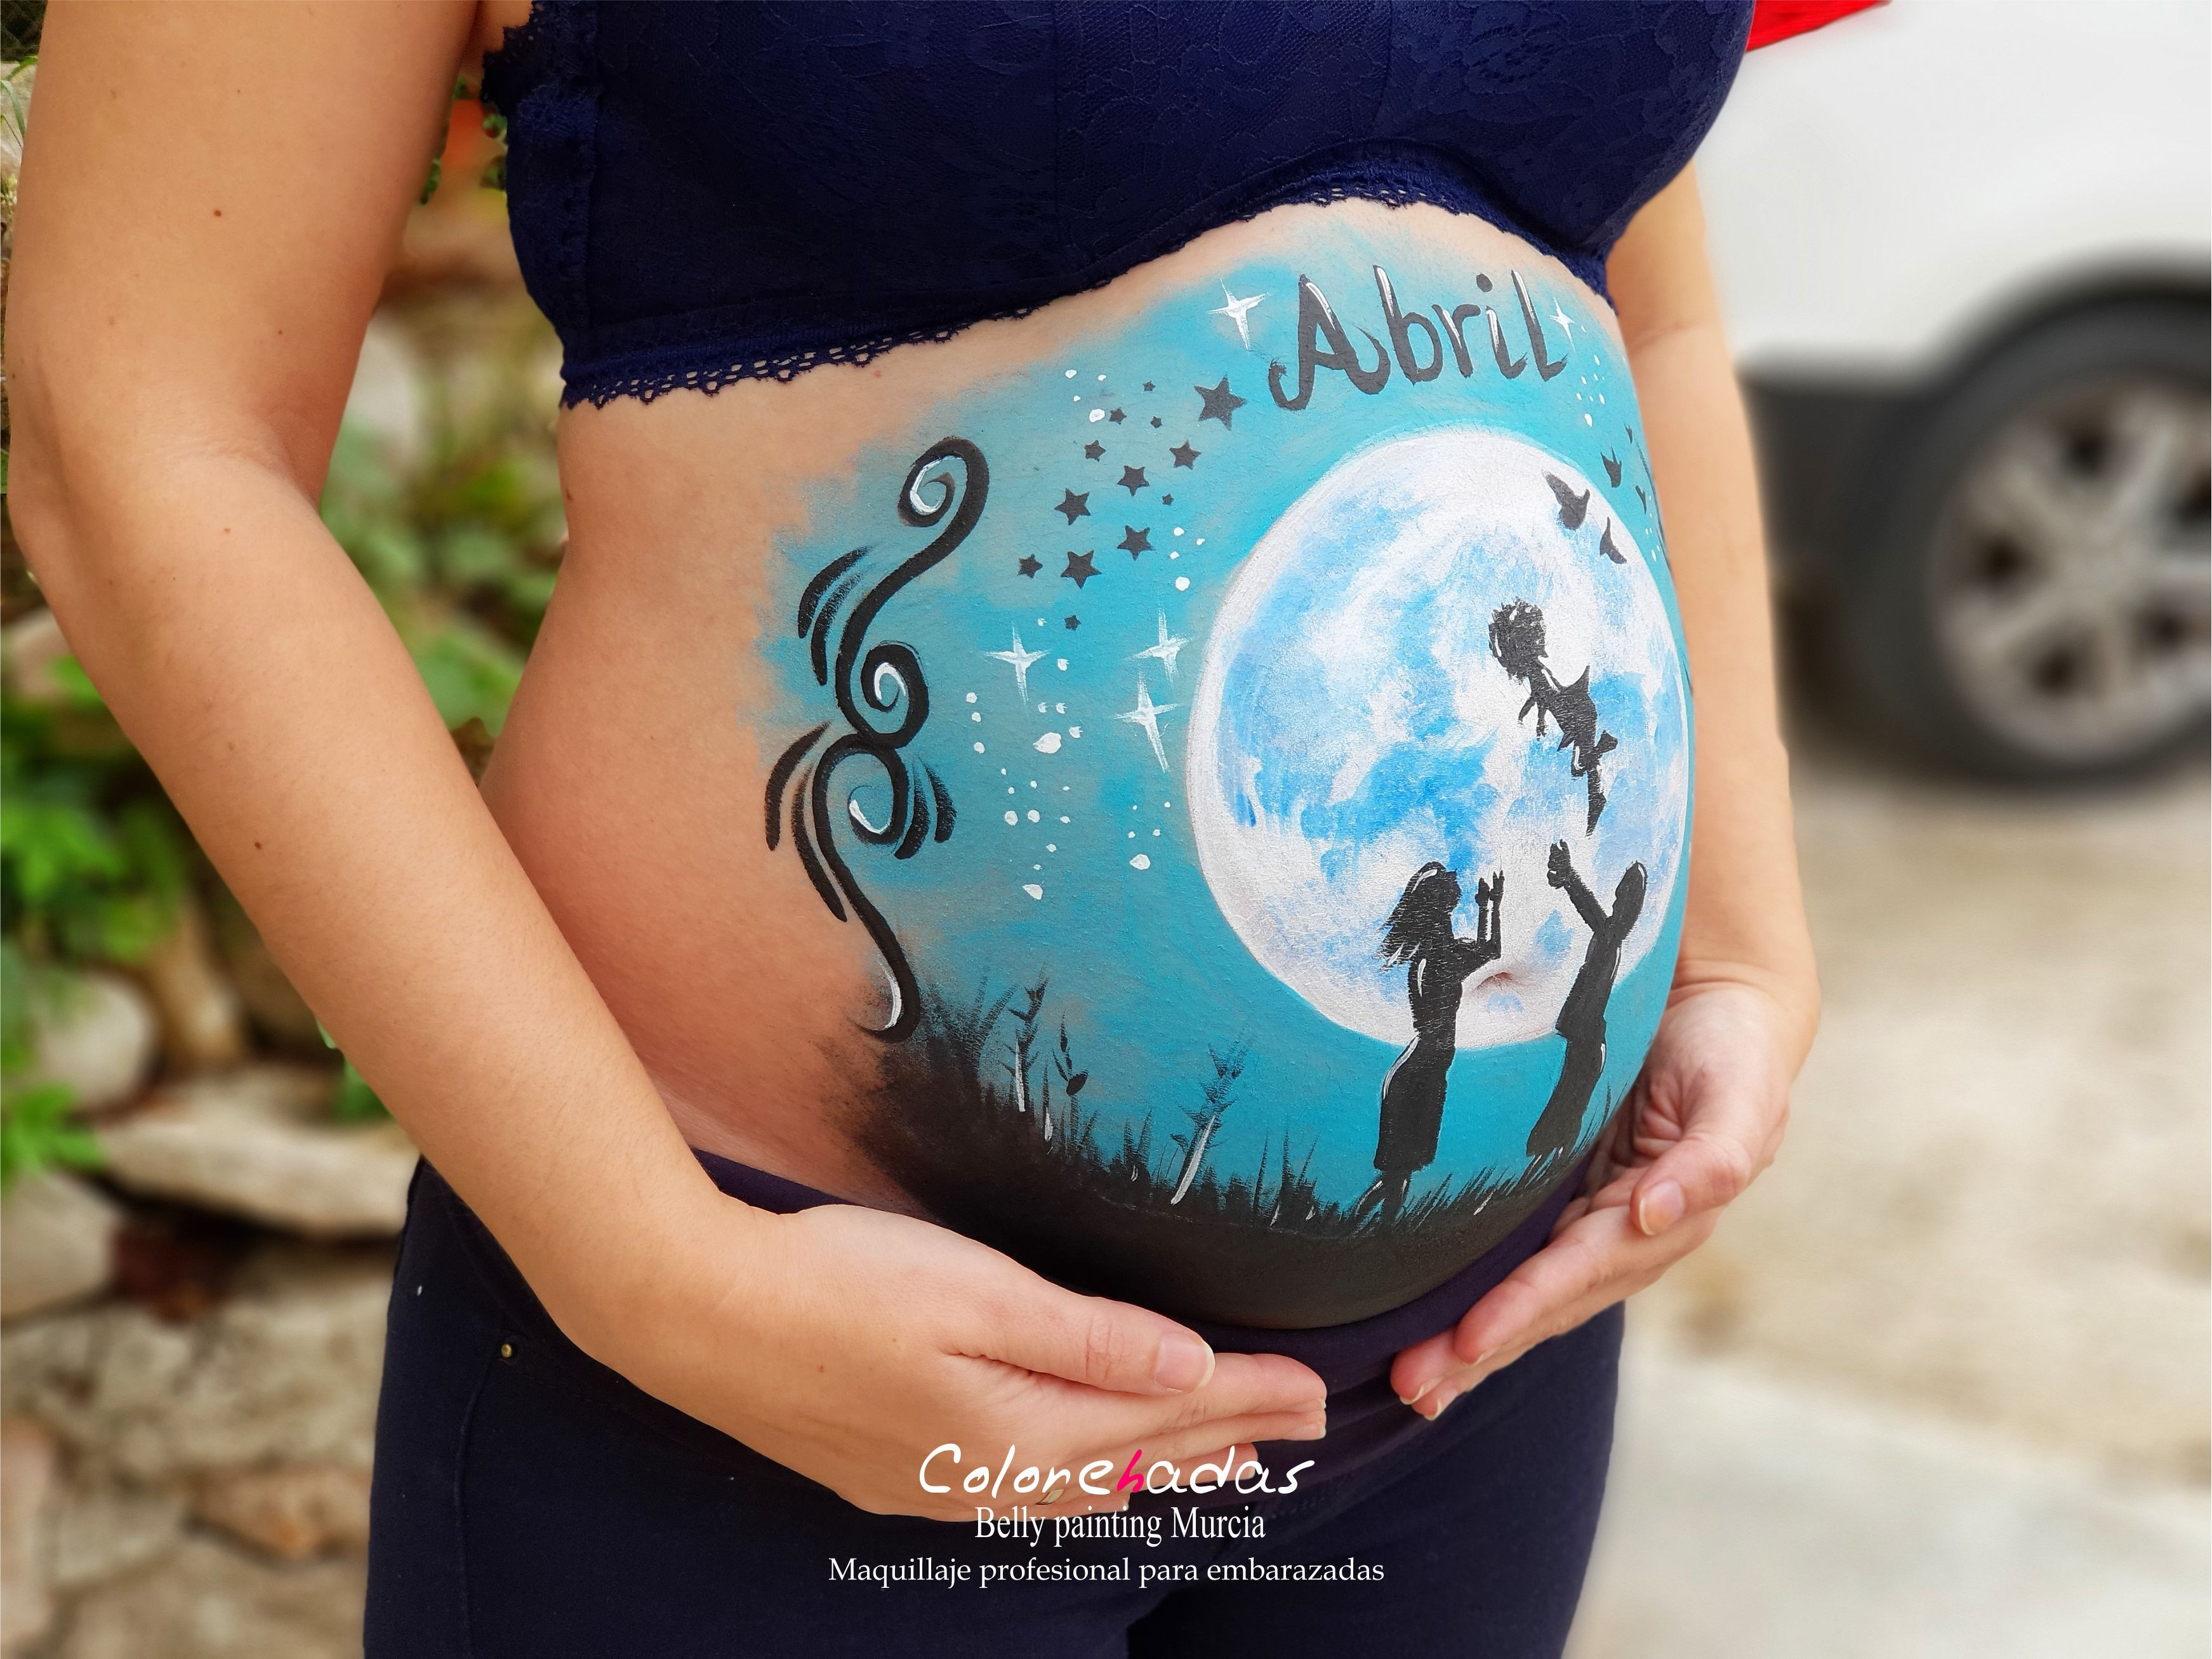 Belly painting logo 2